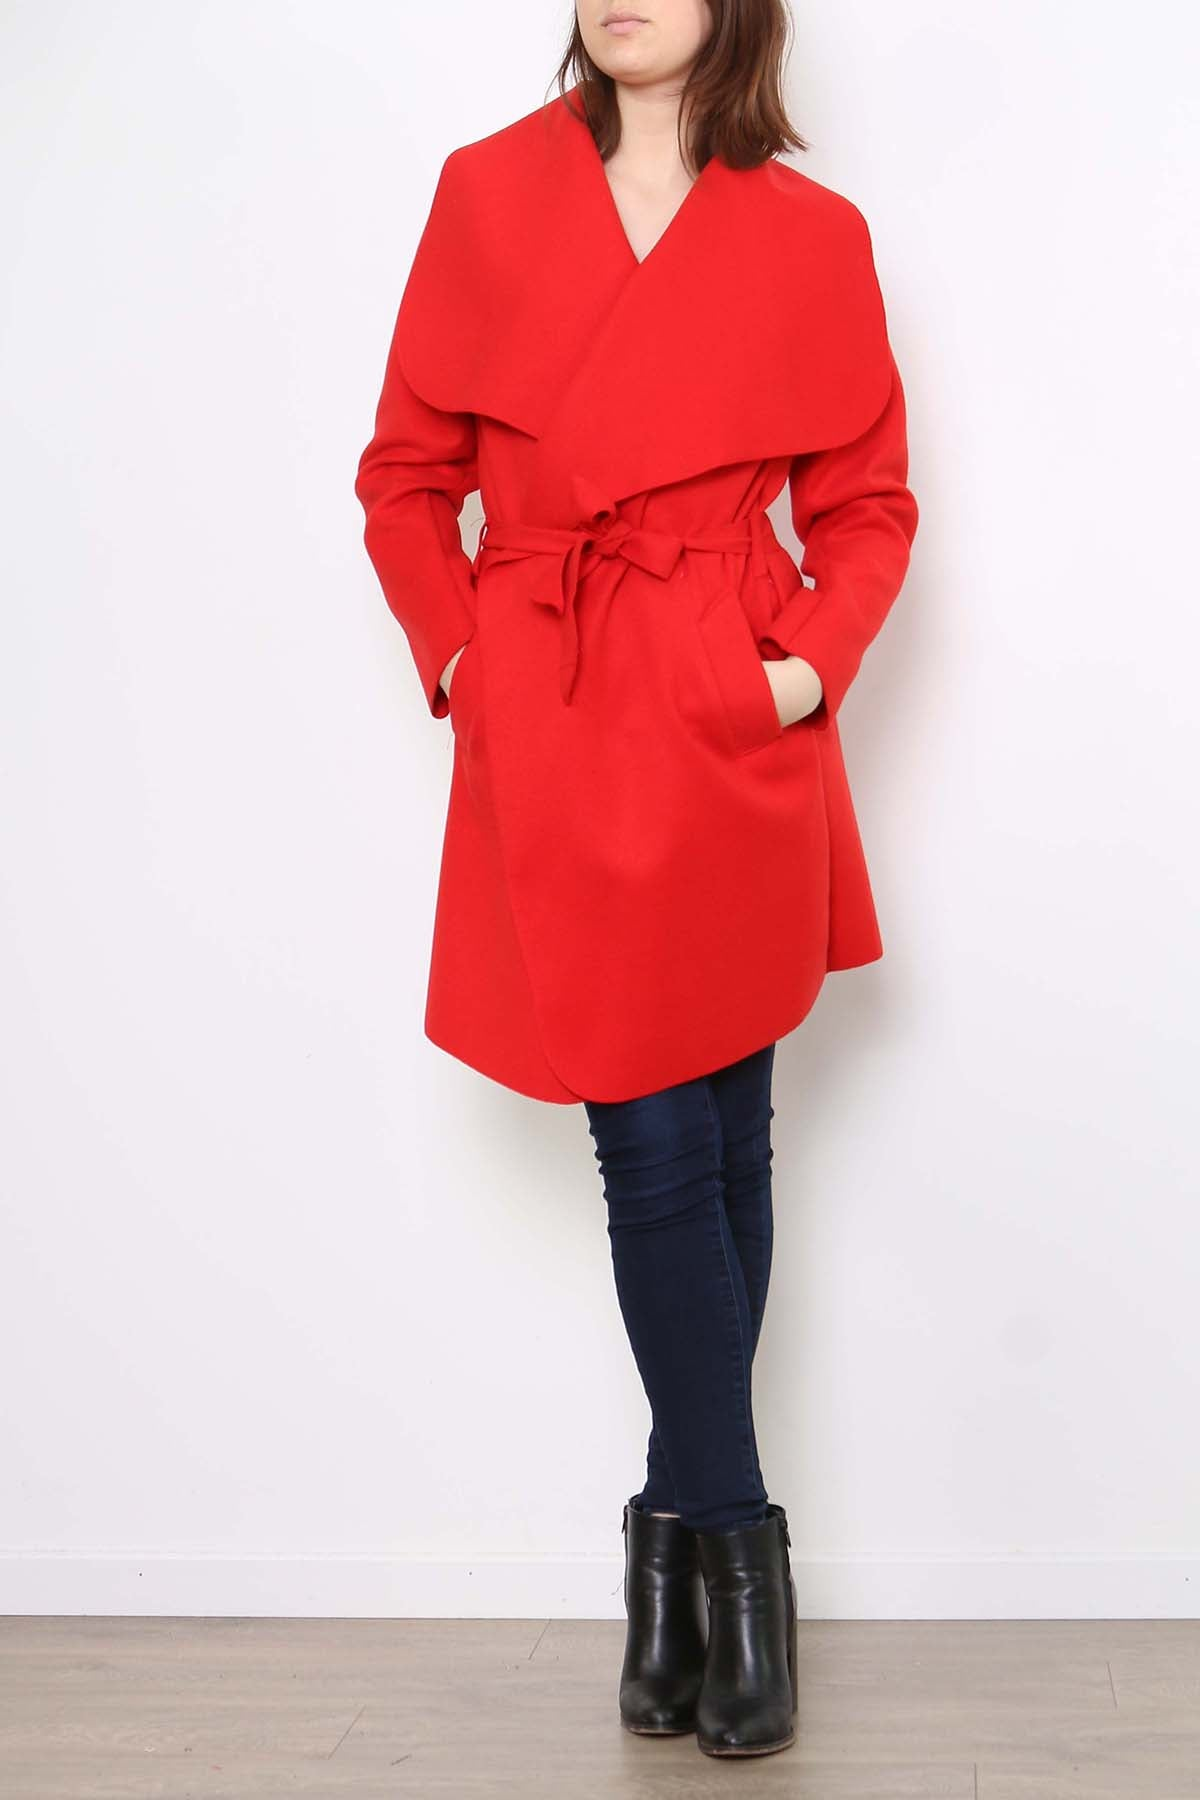 ELLA Shawl Collar Belted Coat - 9 colors available